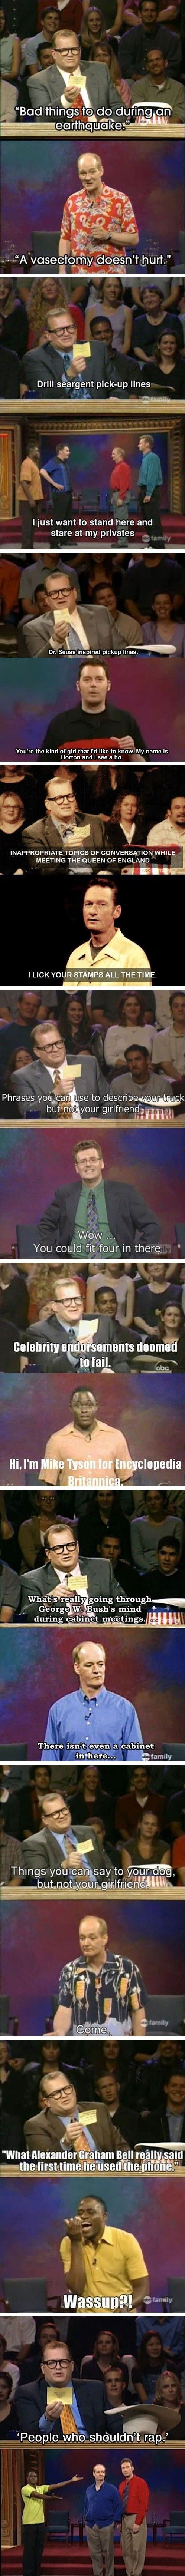 Whose Line Is It Anyways is always funny!